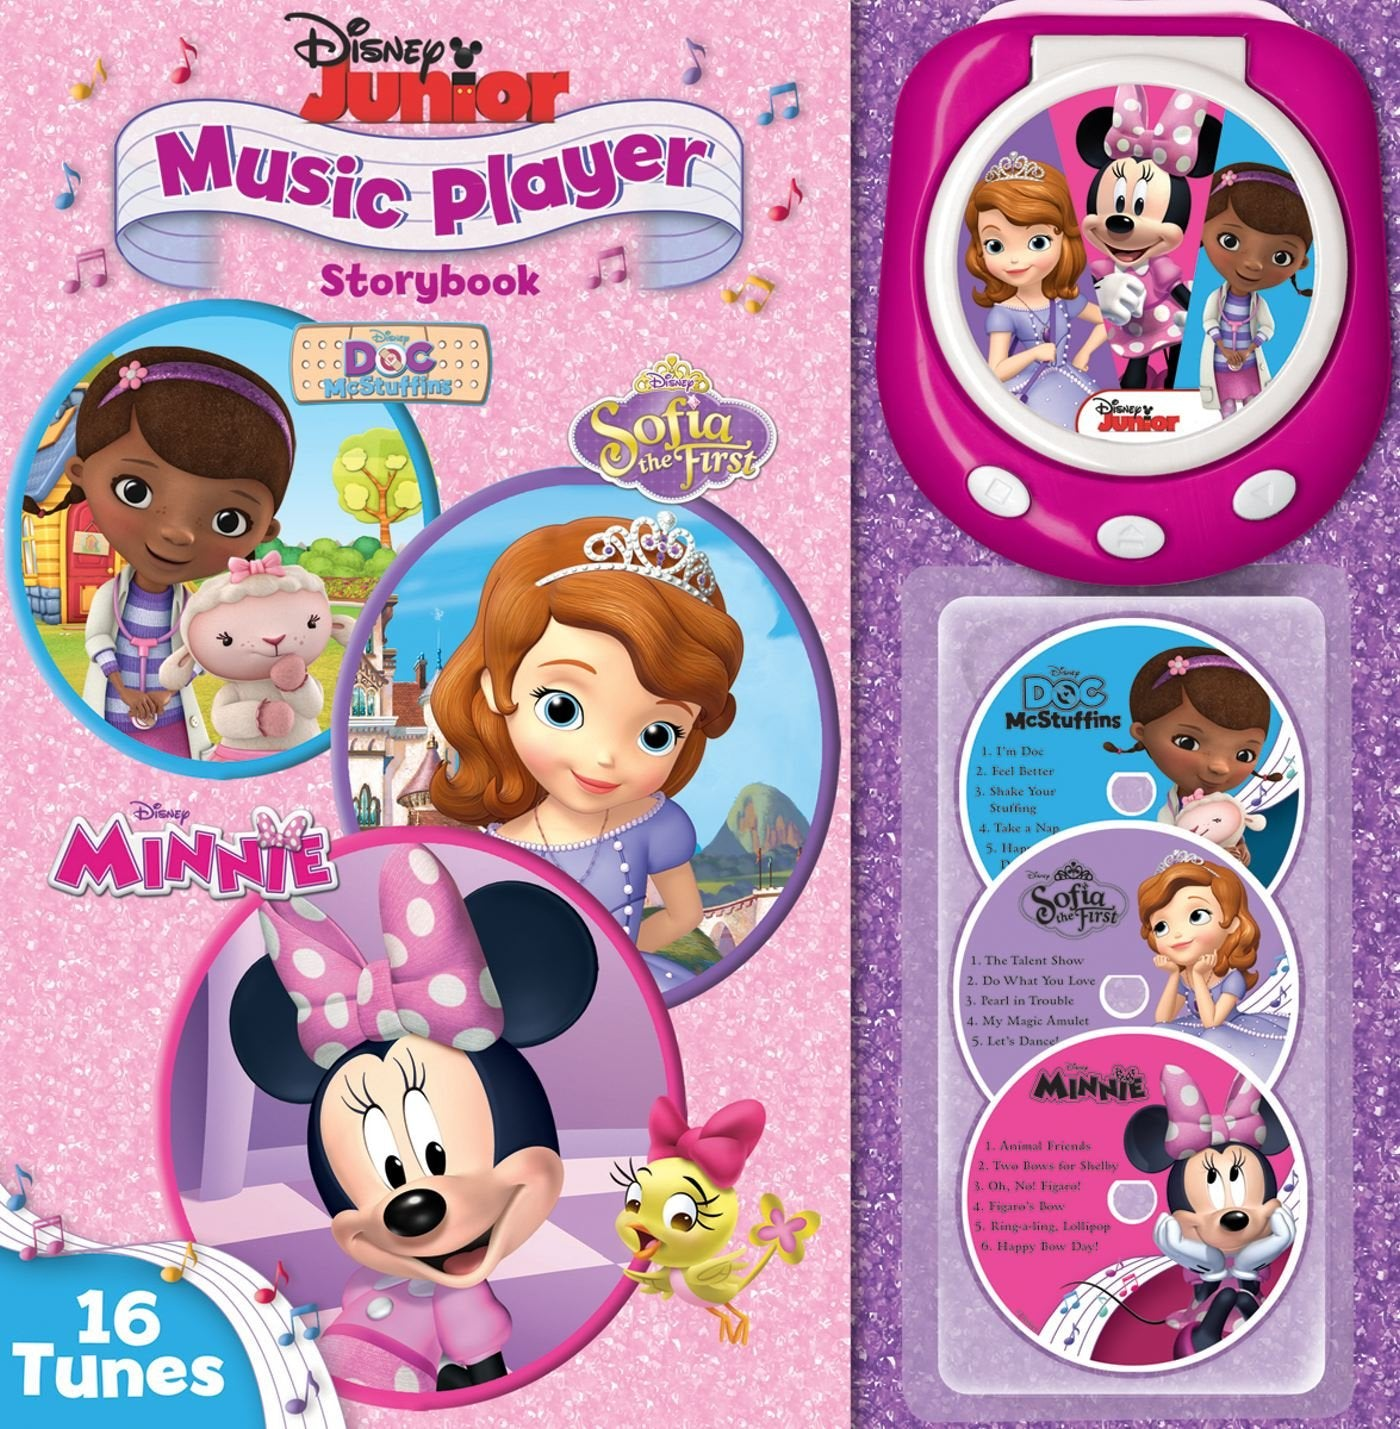 Disney Junior: Music Player Storybook - Doc McStuffins, Sofia the First, & Minnie Mouse